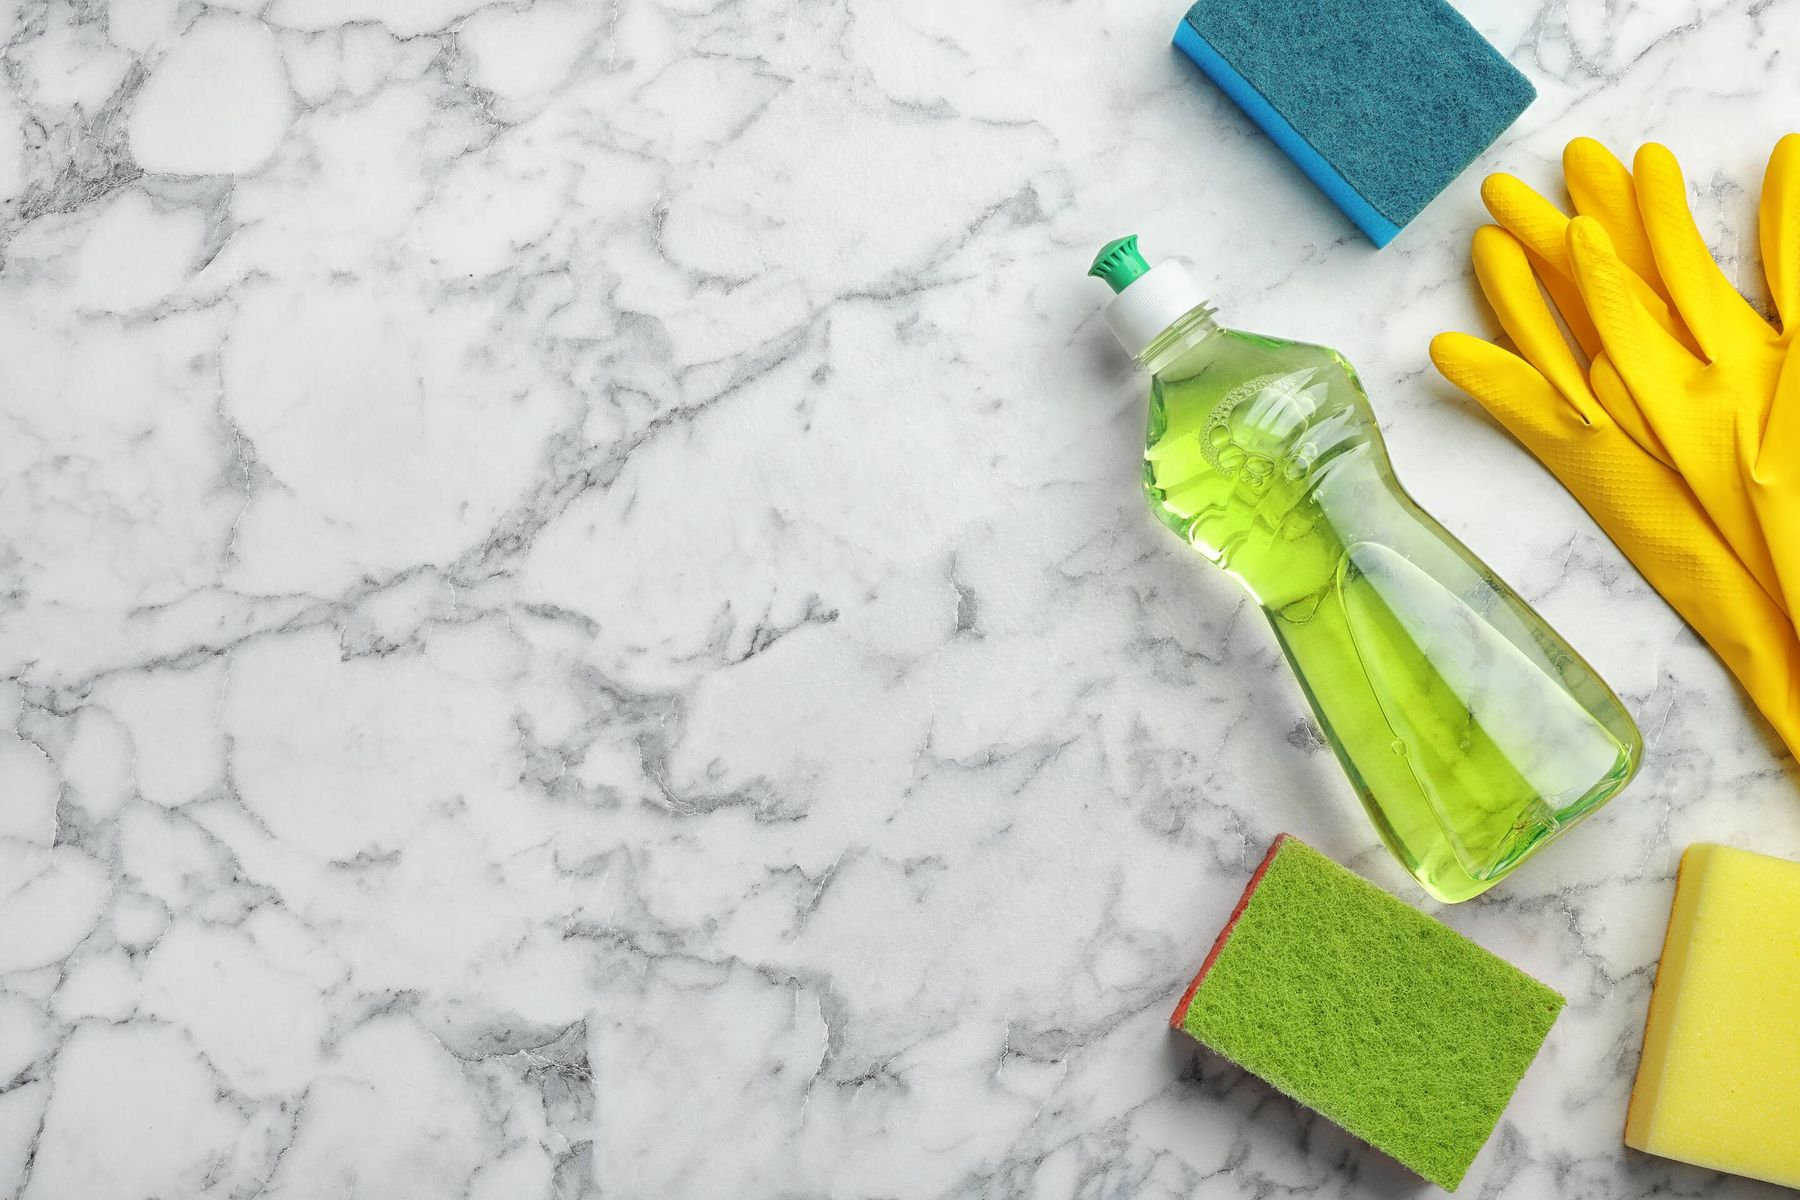 marble worktop with cleaning products